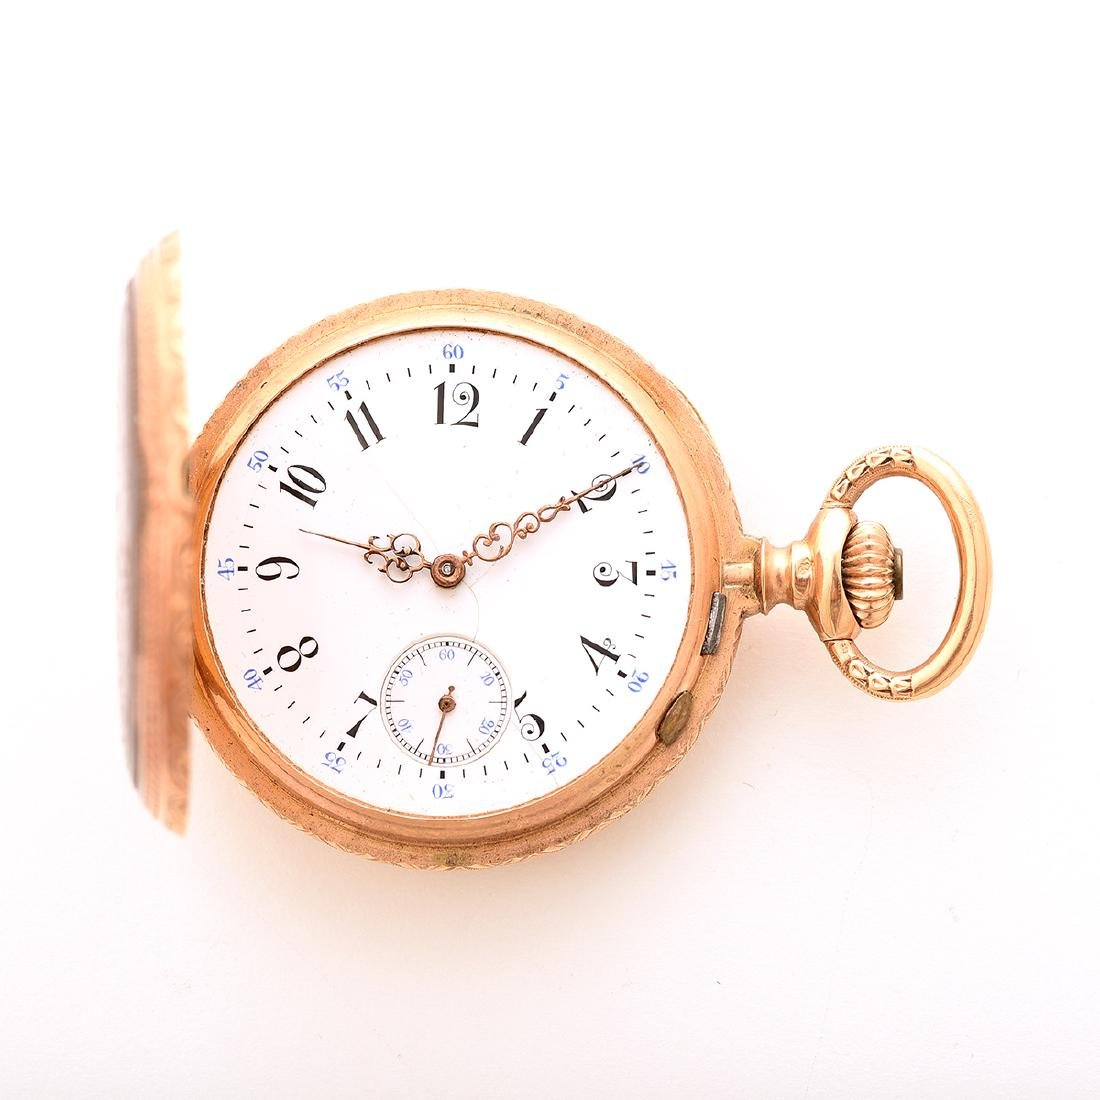 18k Yellow Gold Pocket Watch. - 3